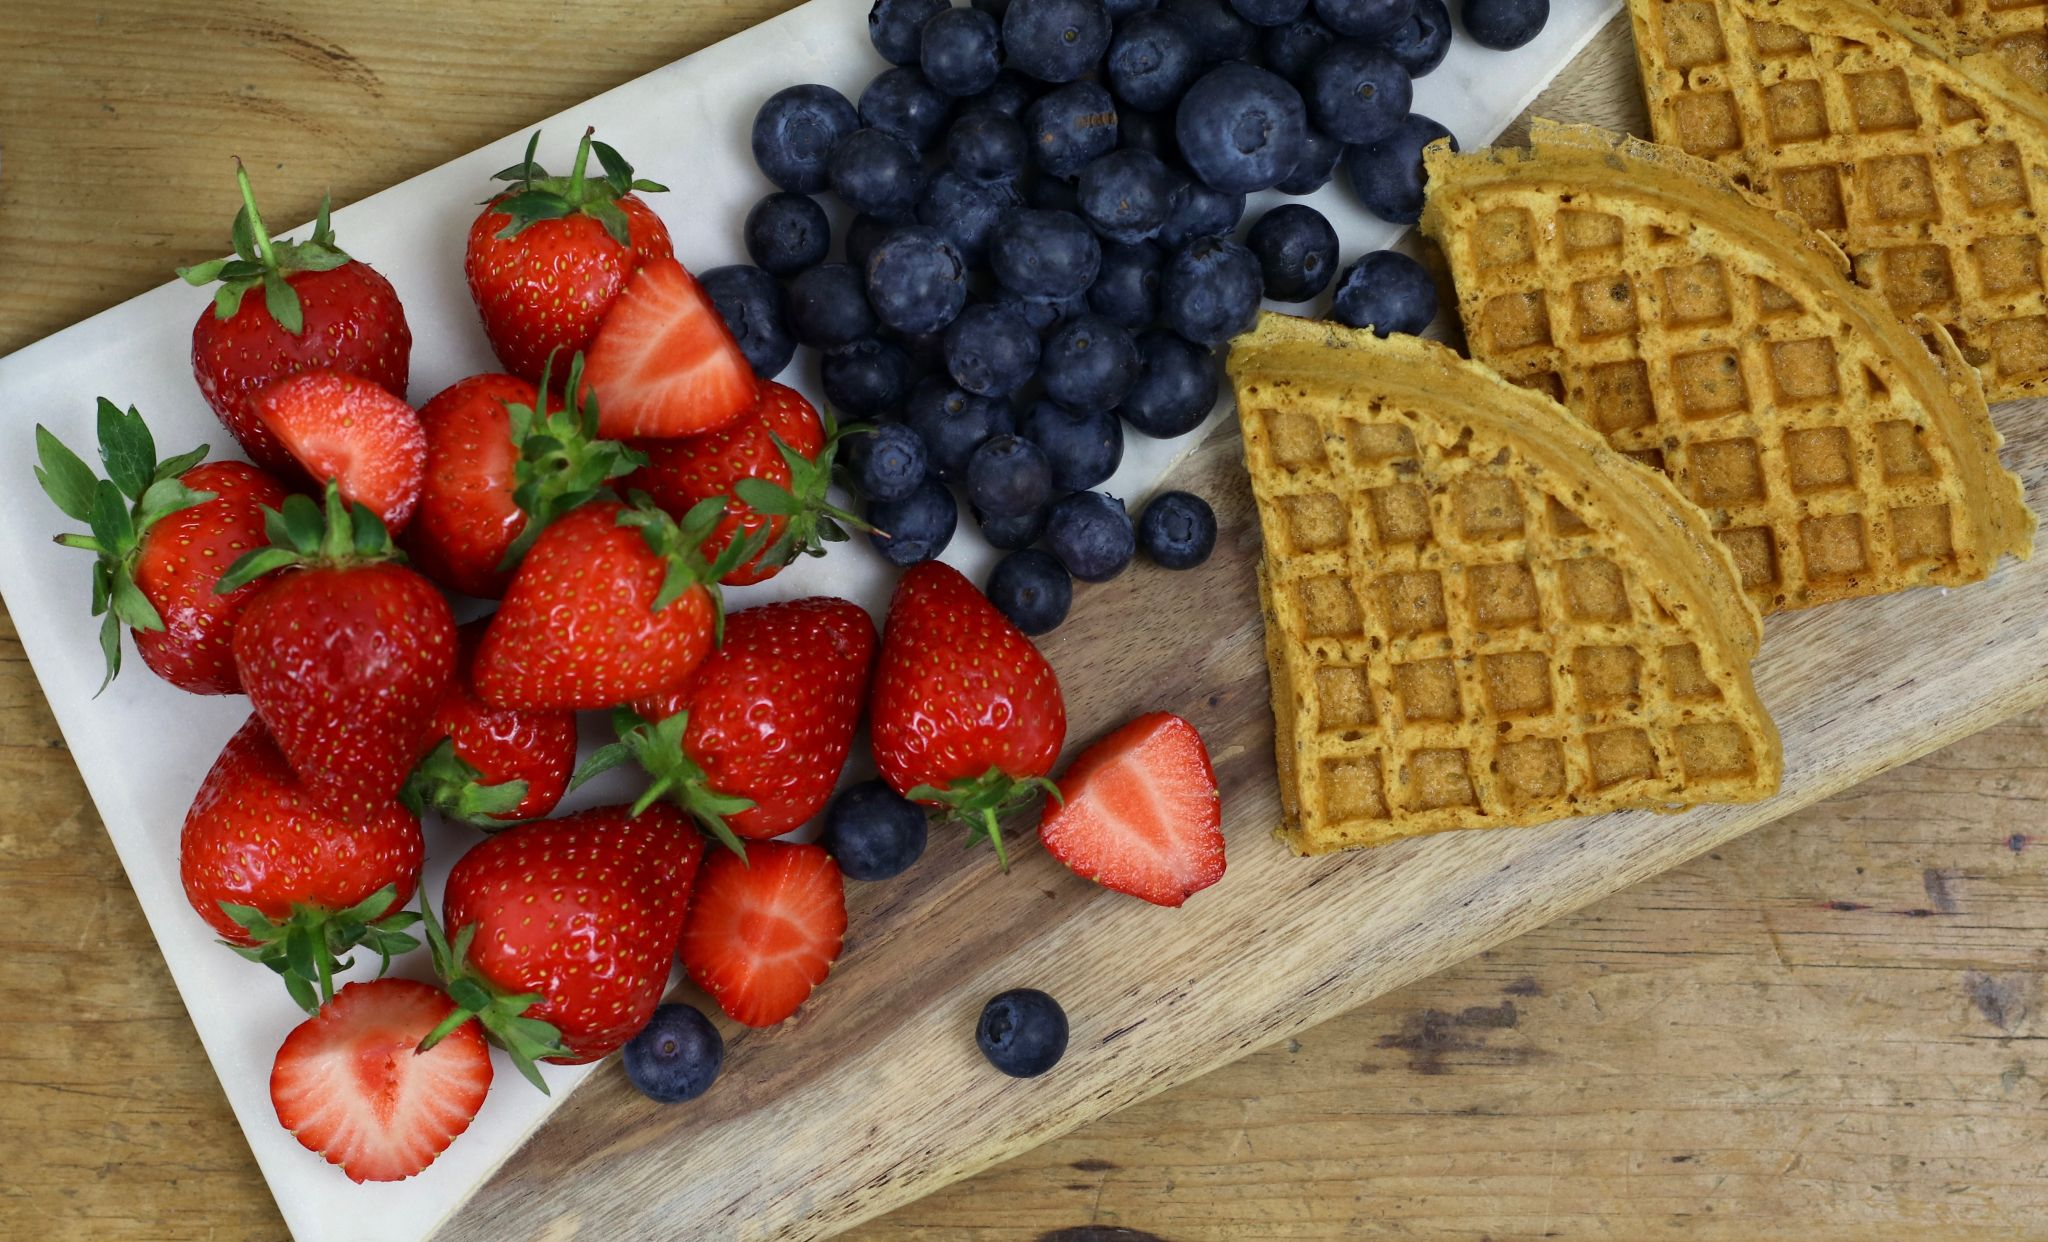 Brunch club at home waffles and fruit strawberries & blueberries